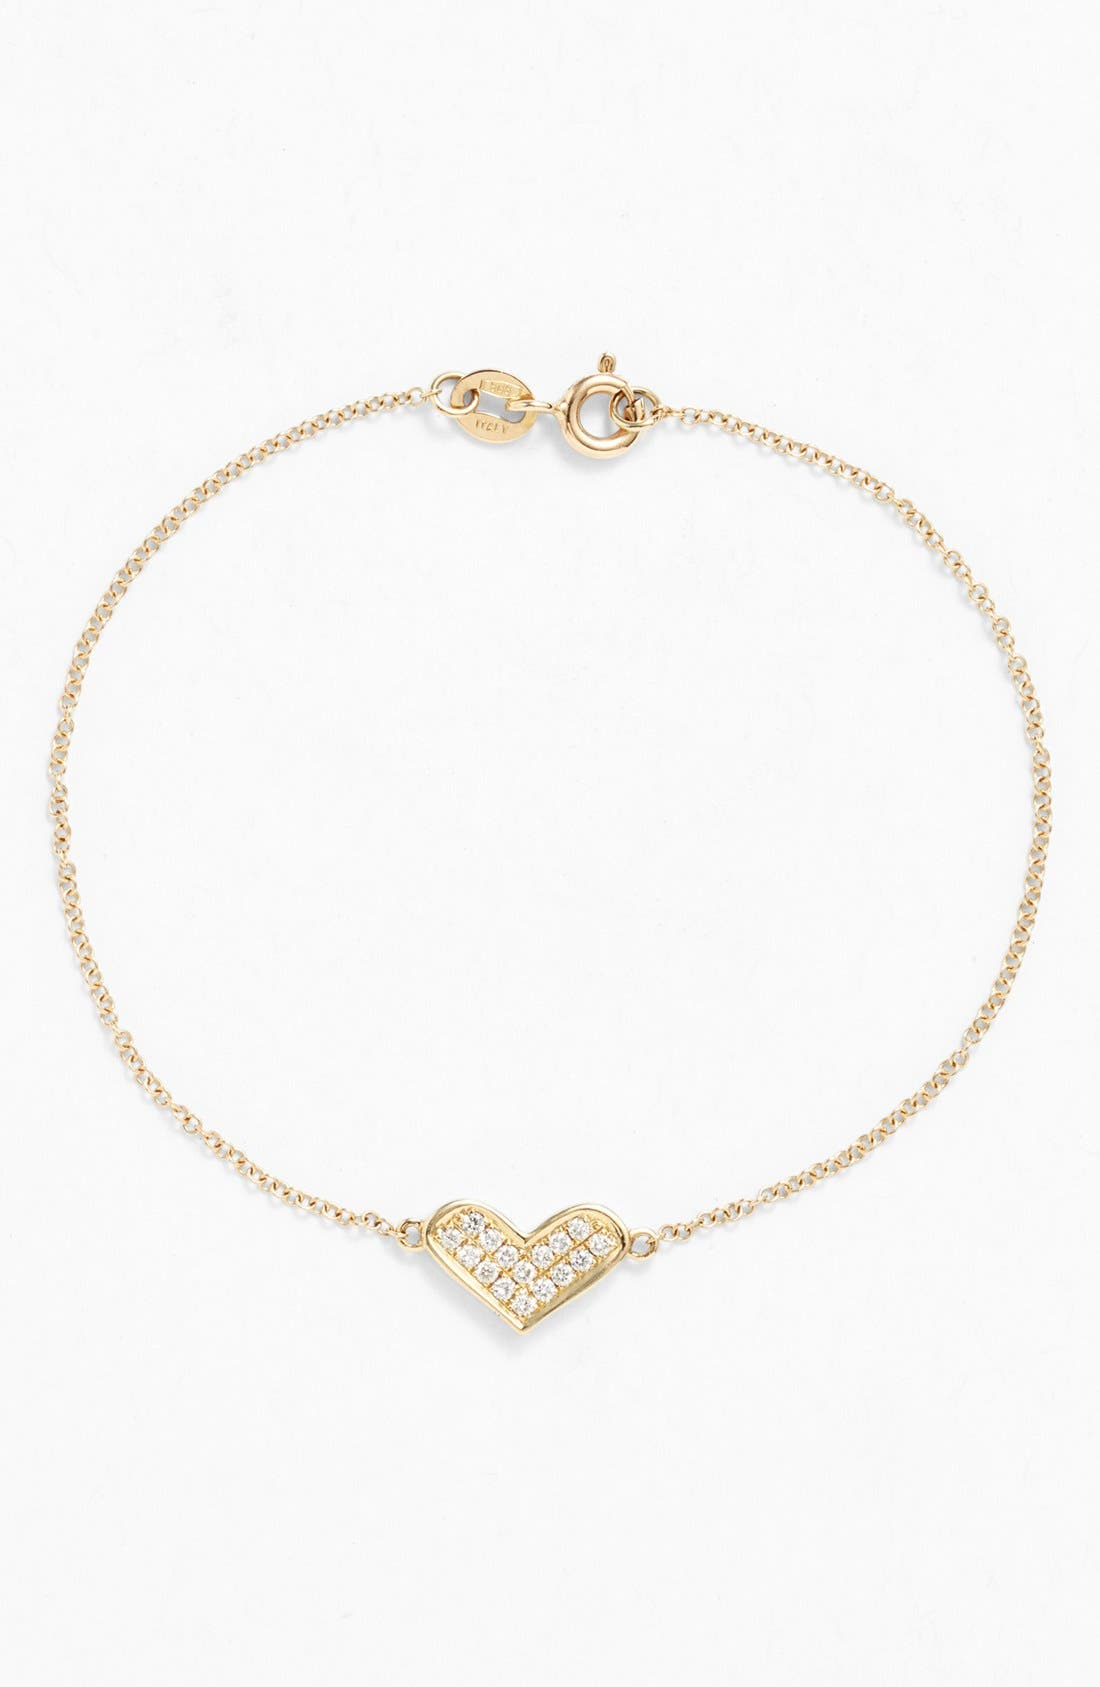 Main Image - Dana Rebecca Designs 'Jacquie C.' Reversible Diamond Heart Bracelet